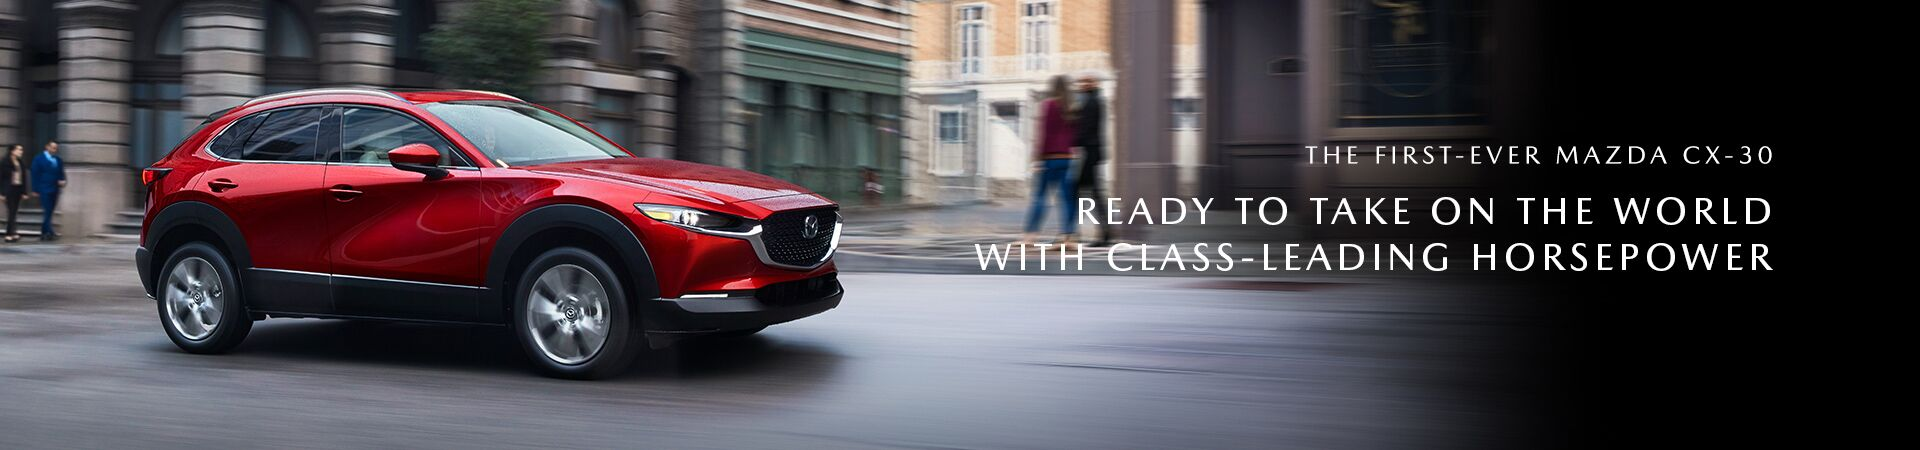 Mazda Dealership Md >> Mazda Dealership Hagerstown Md Pre Owned Cars Sheehy Mazda